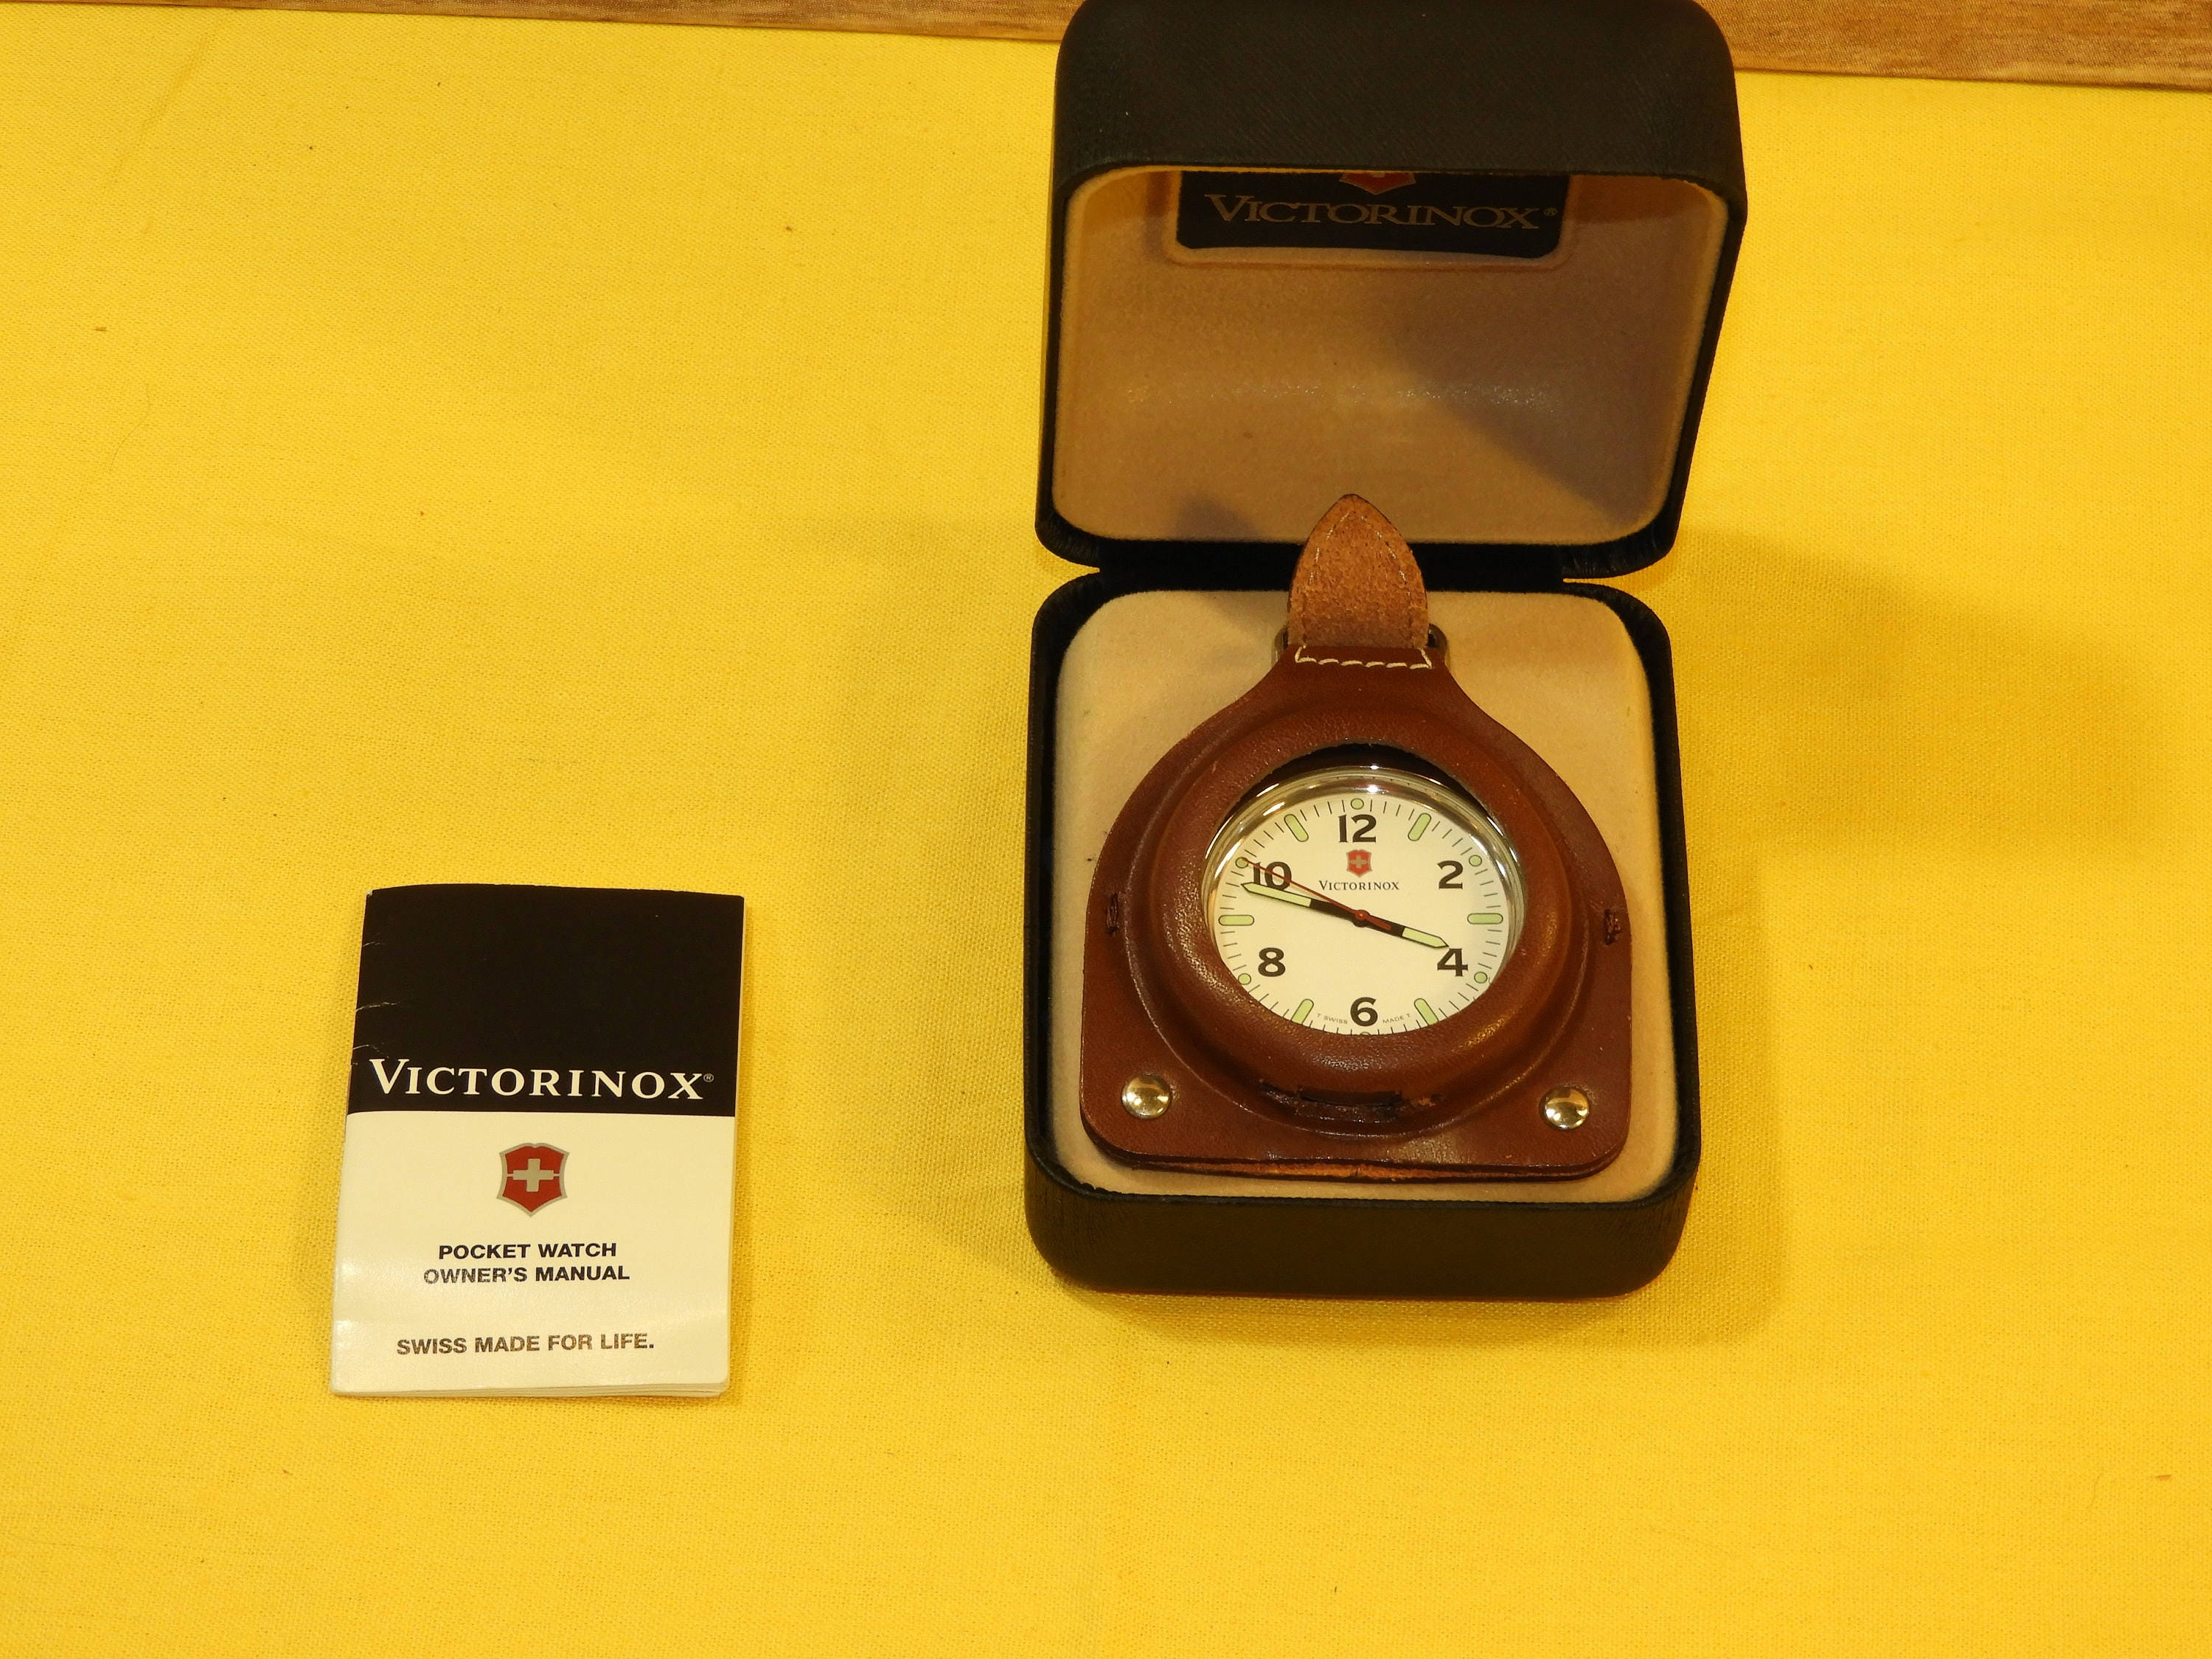 Vintage Victorinox Swiss Pocket Watch Swiss Army Knife